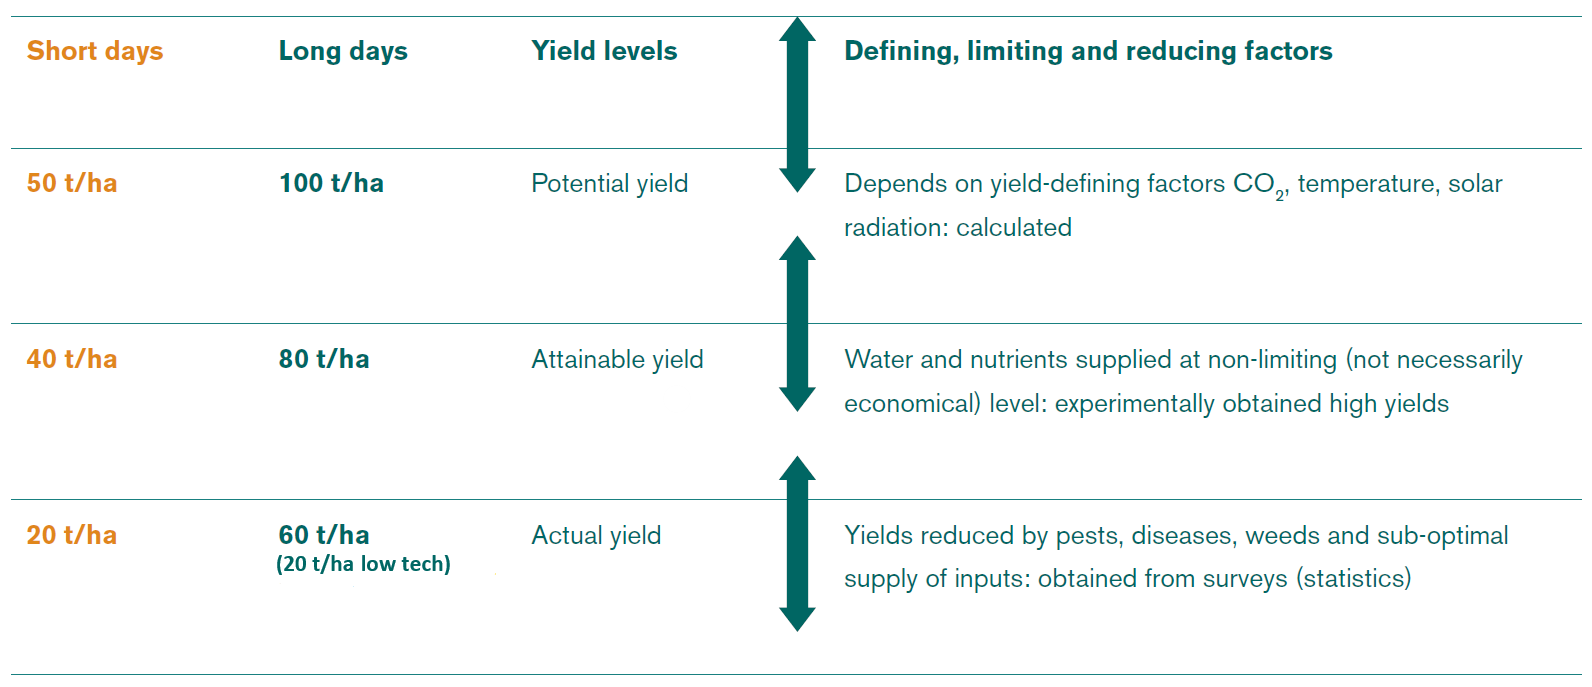 The three yield levels and factors that determine or reduce them.